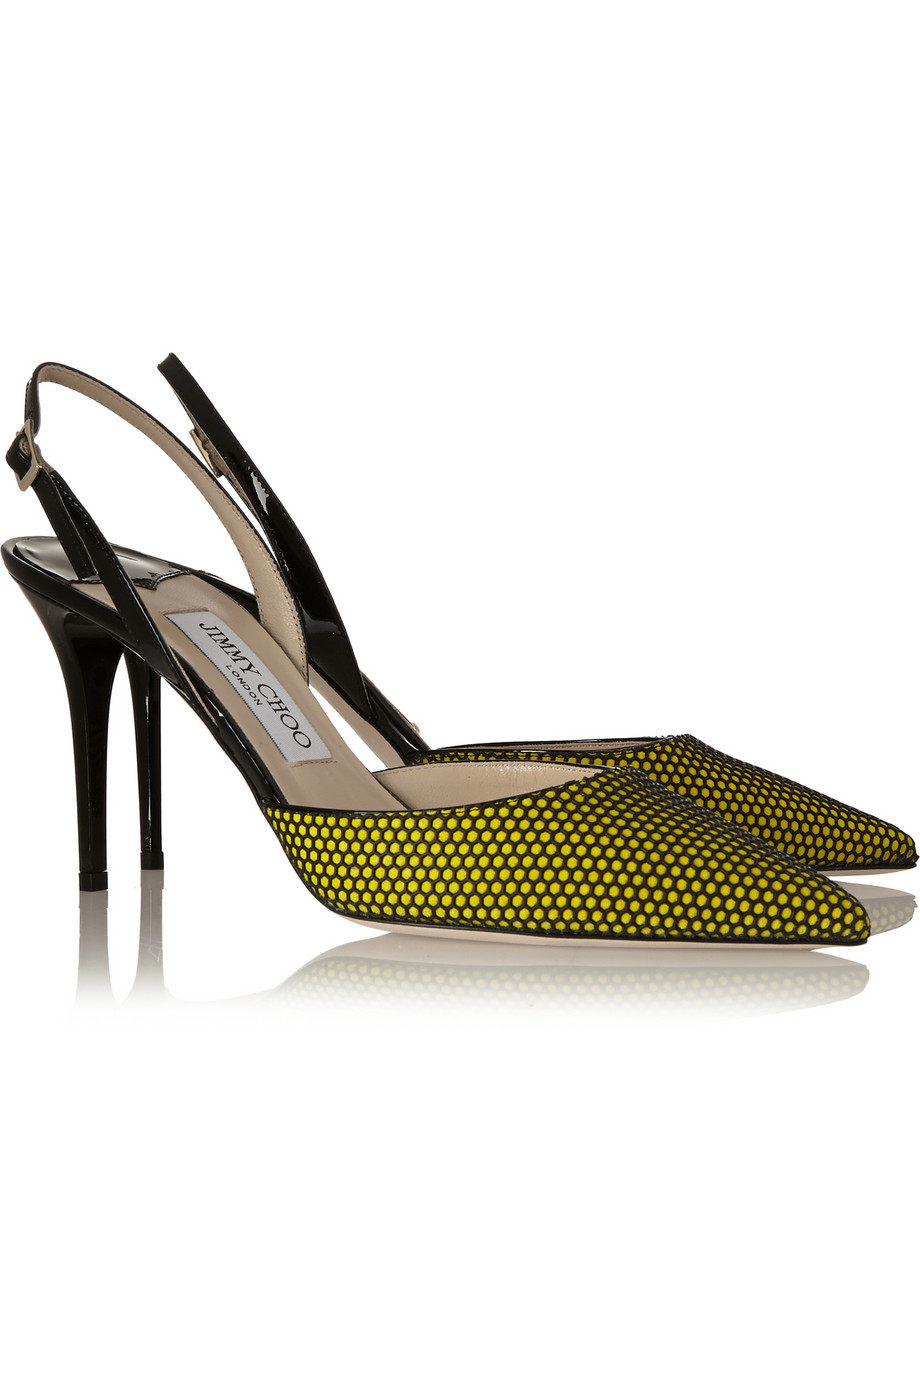 676052f2dbbc Lyst - Jimmy Choo Tilly Honeycomb-Mesh And Patent-Leather Pumps in Green